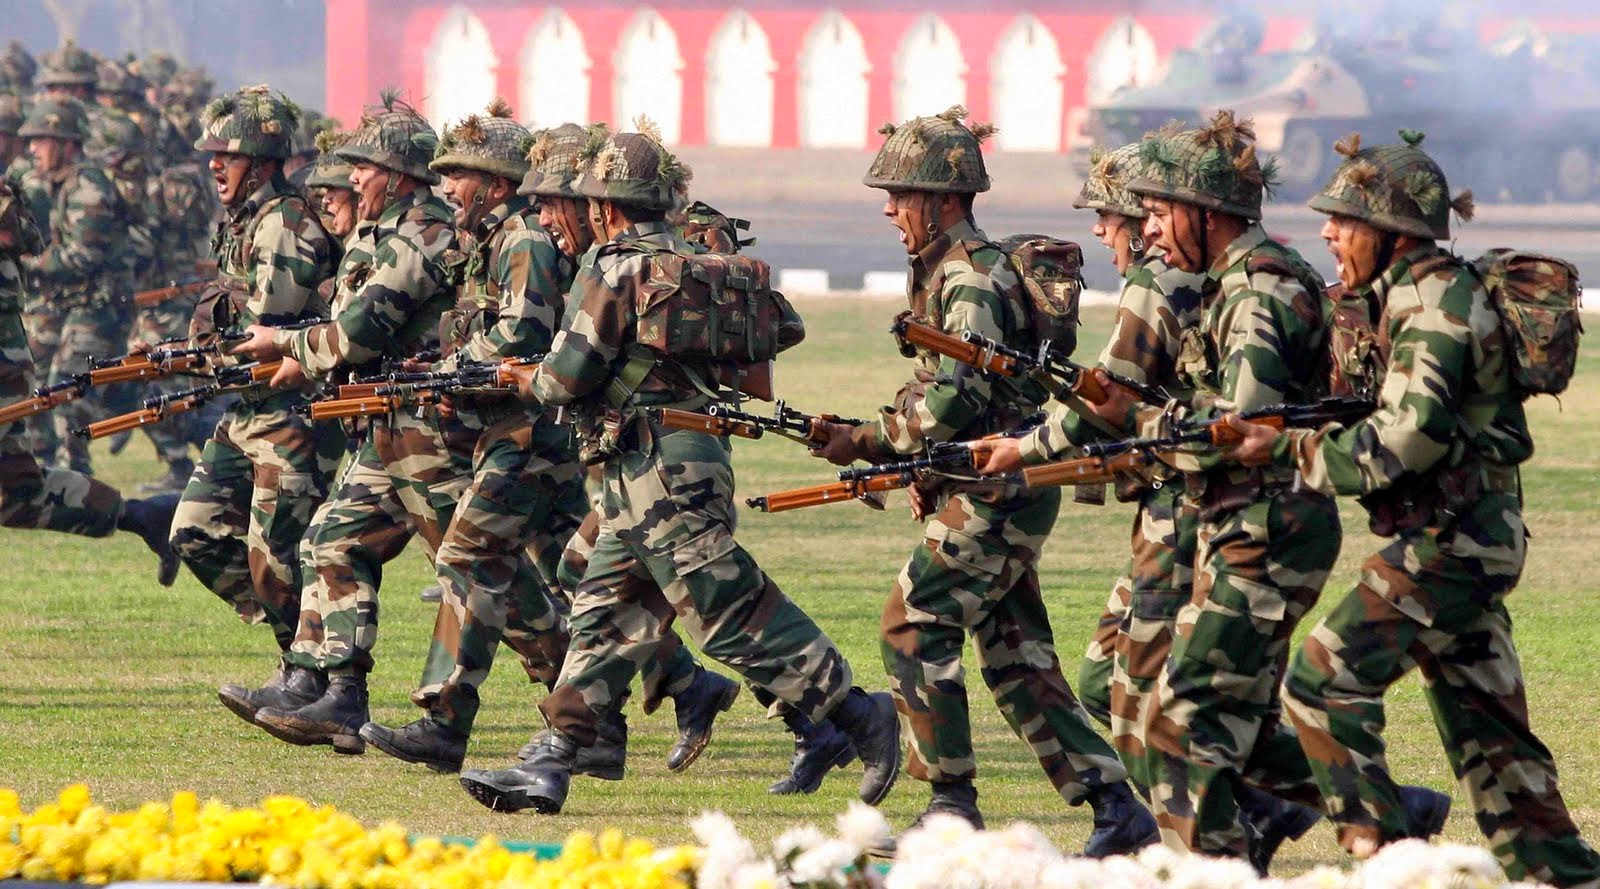 Invasion clipart indian army 'assault' ~ against Military Civilians